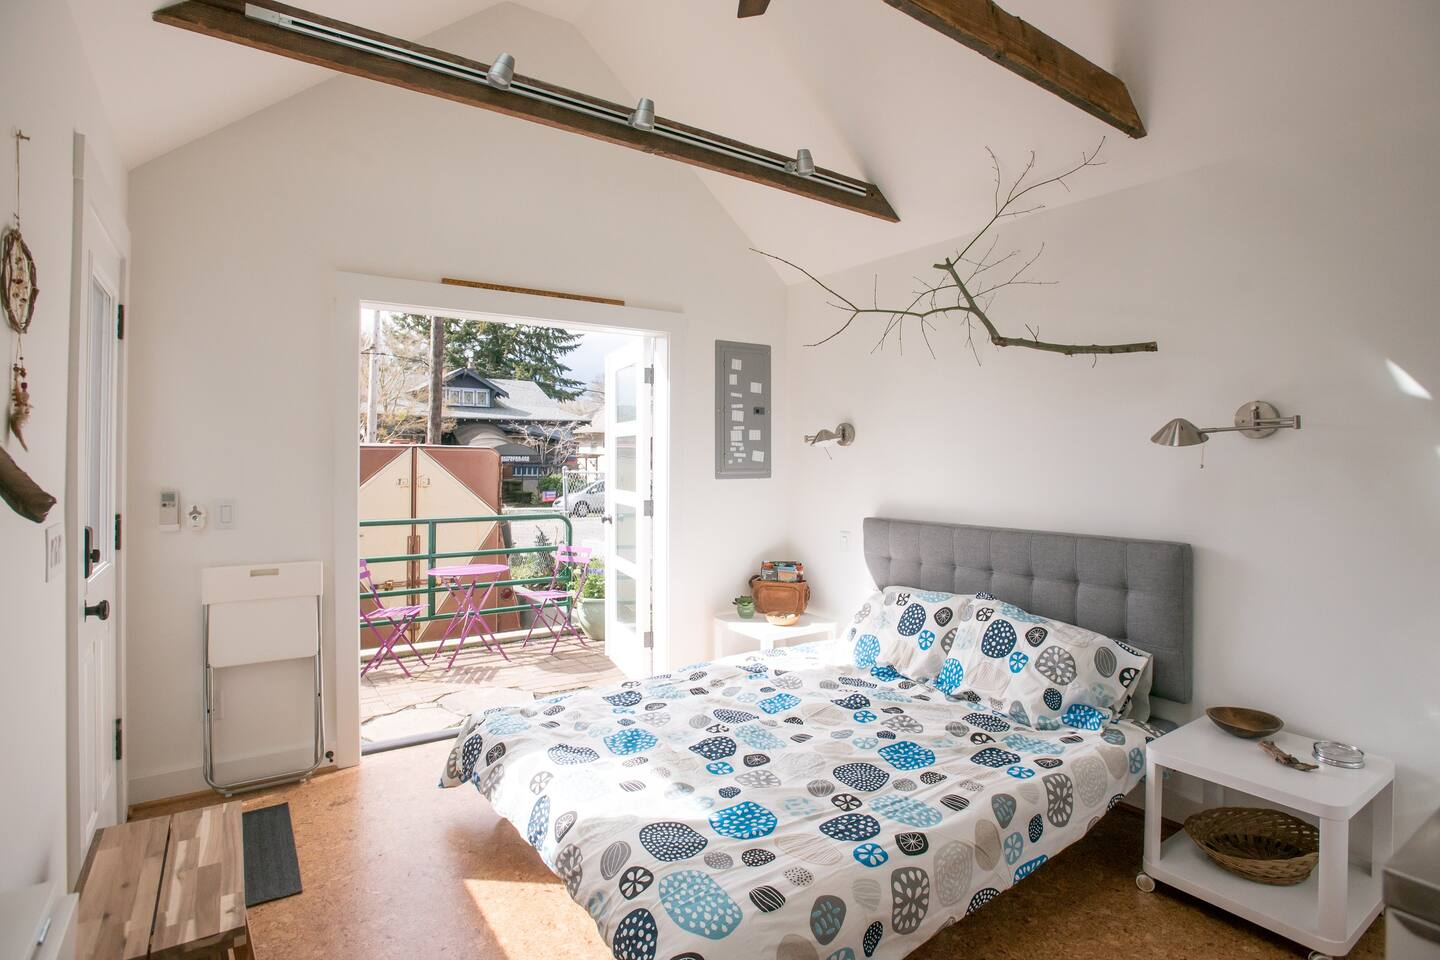 French doors open onto private patio. Tall ceiling with sky lights. Queen size bed.